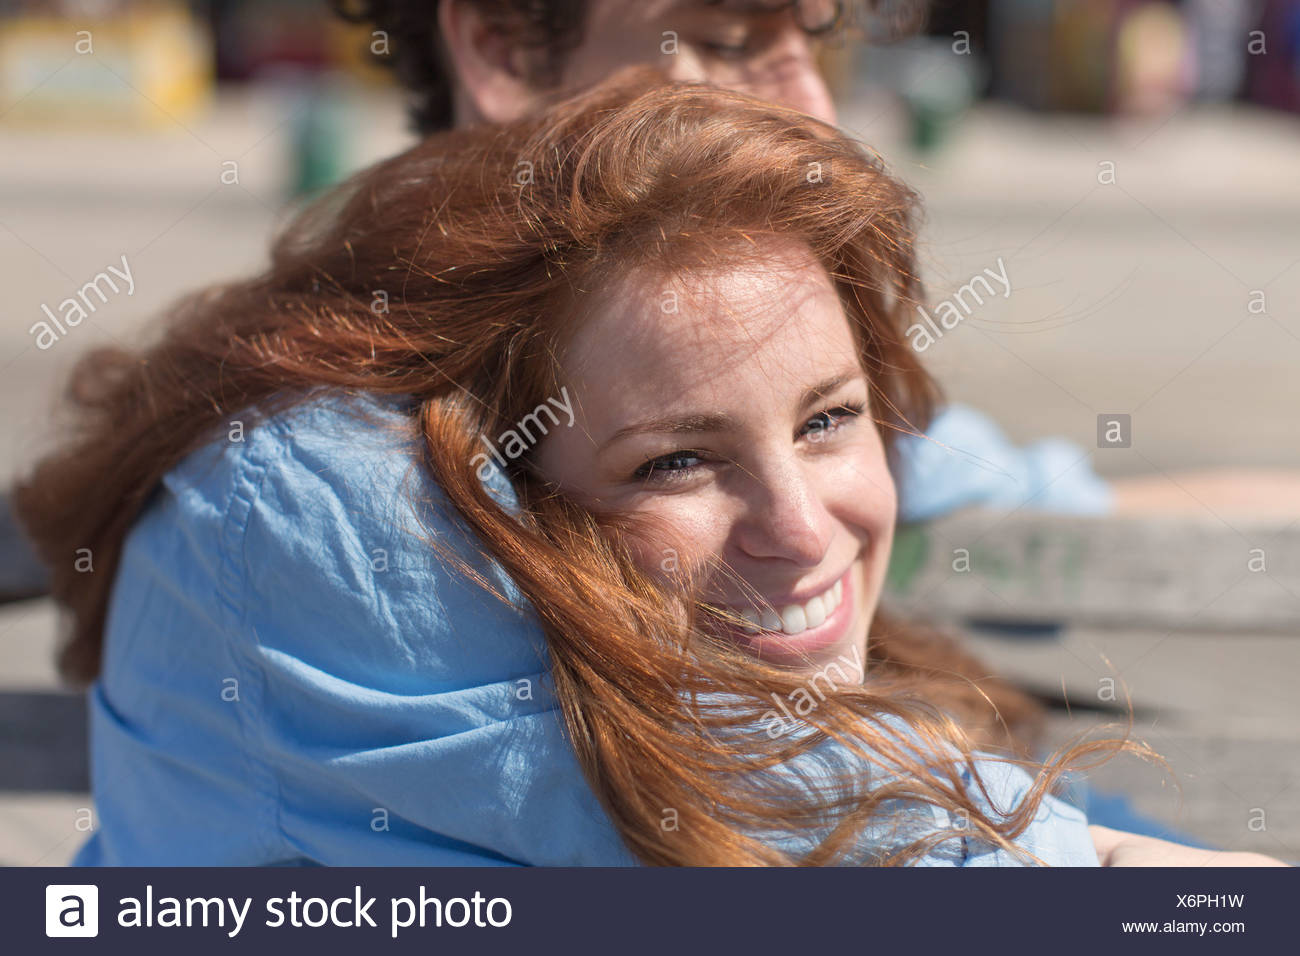 Close up portrait of young woman in boyfriends arms - Stock Image